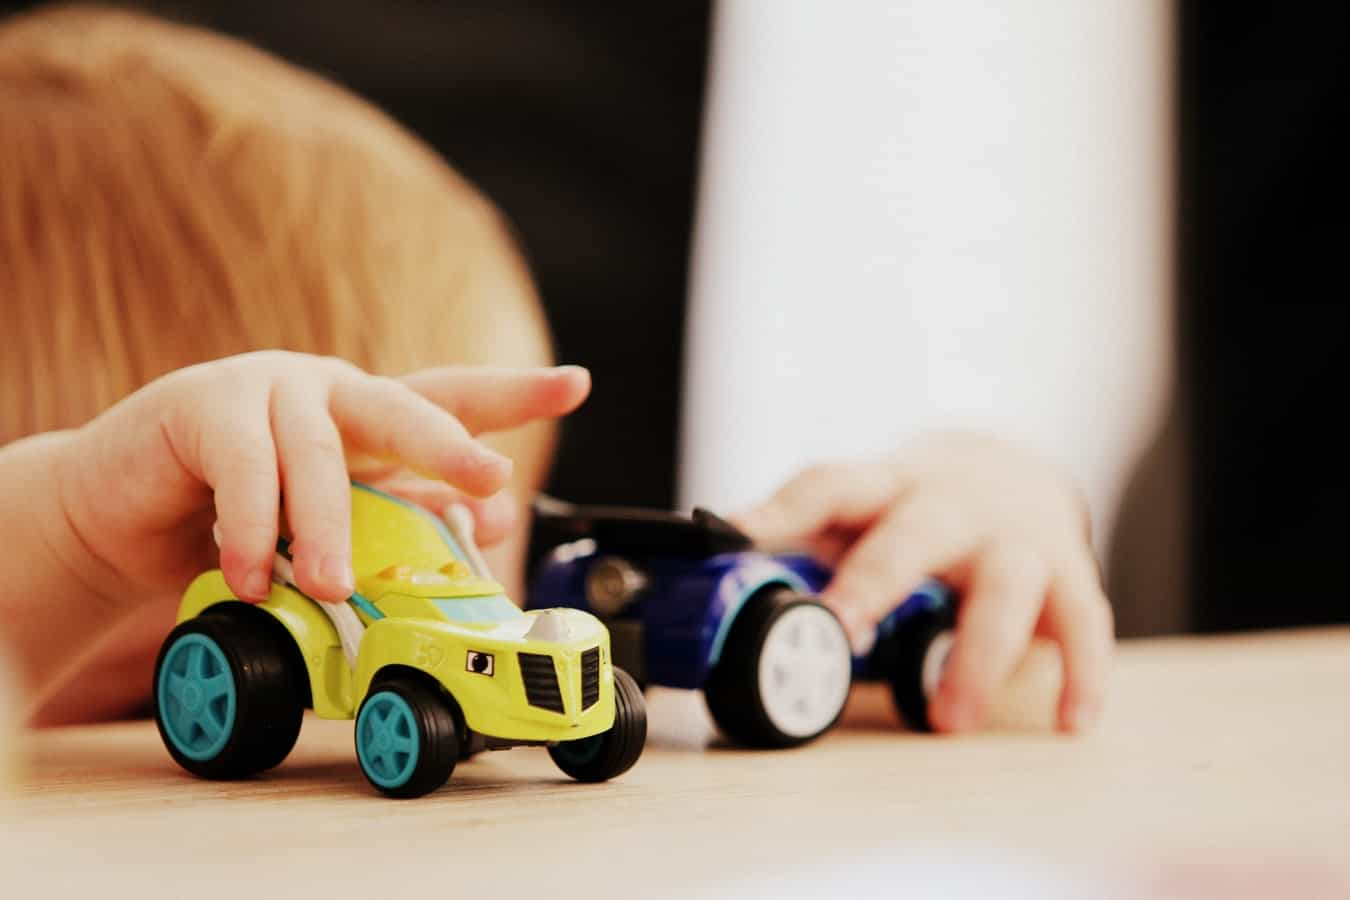 Best educational toys for 2 year olds in 2020 {affordable}